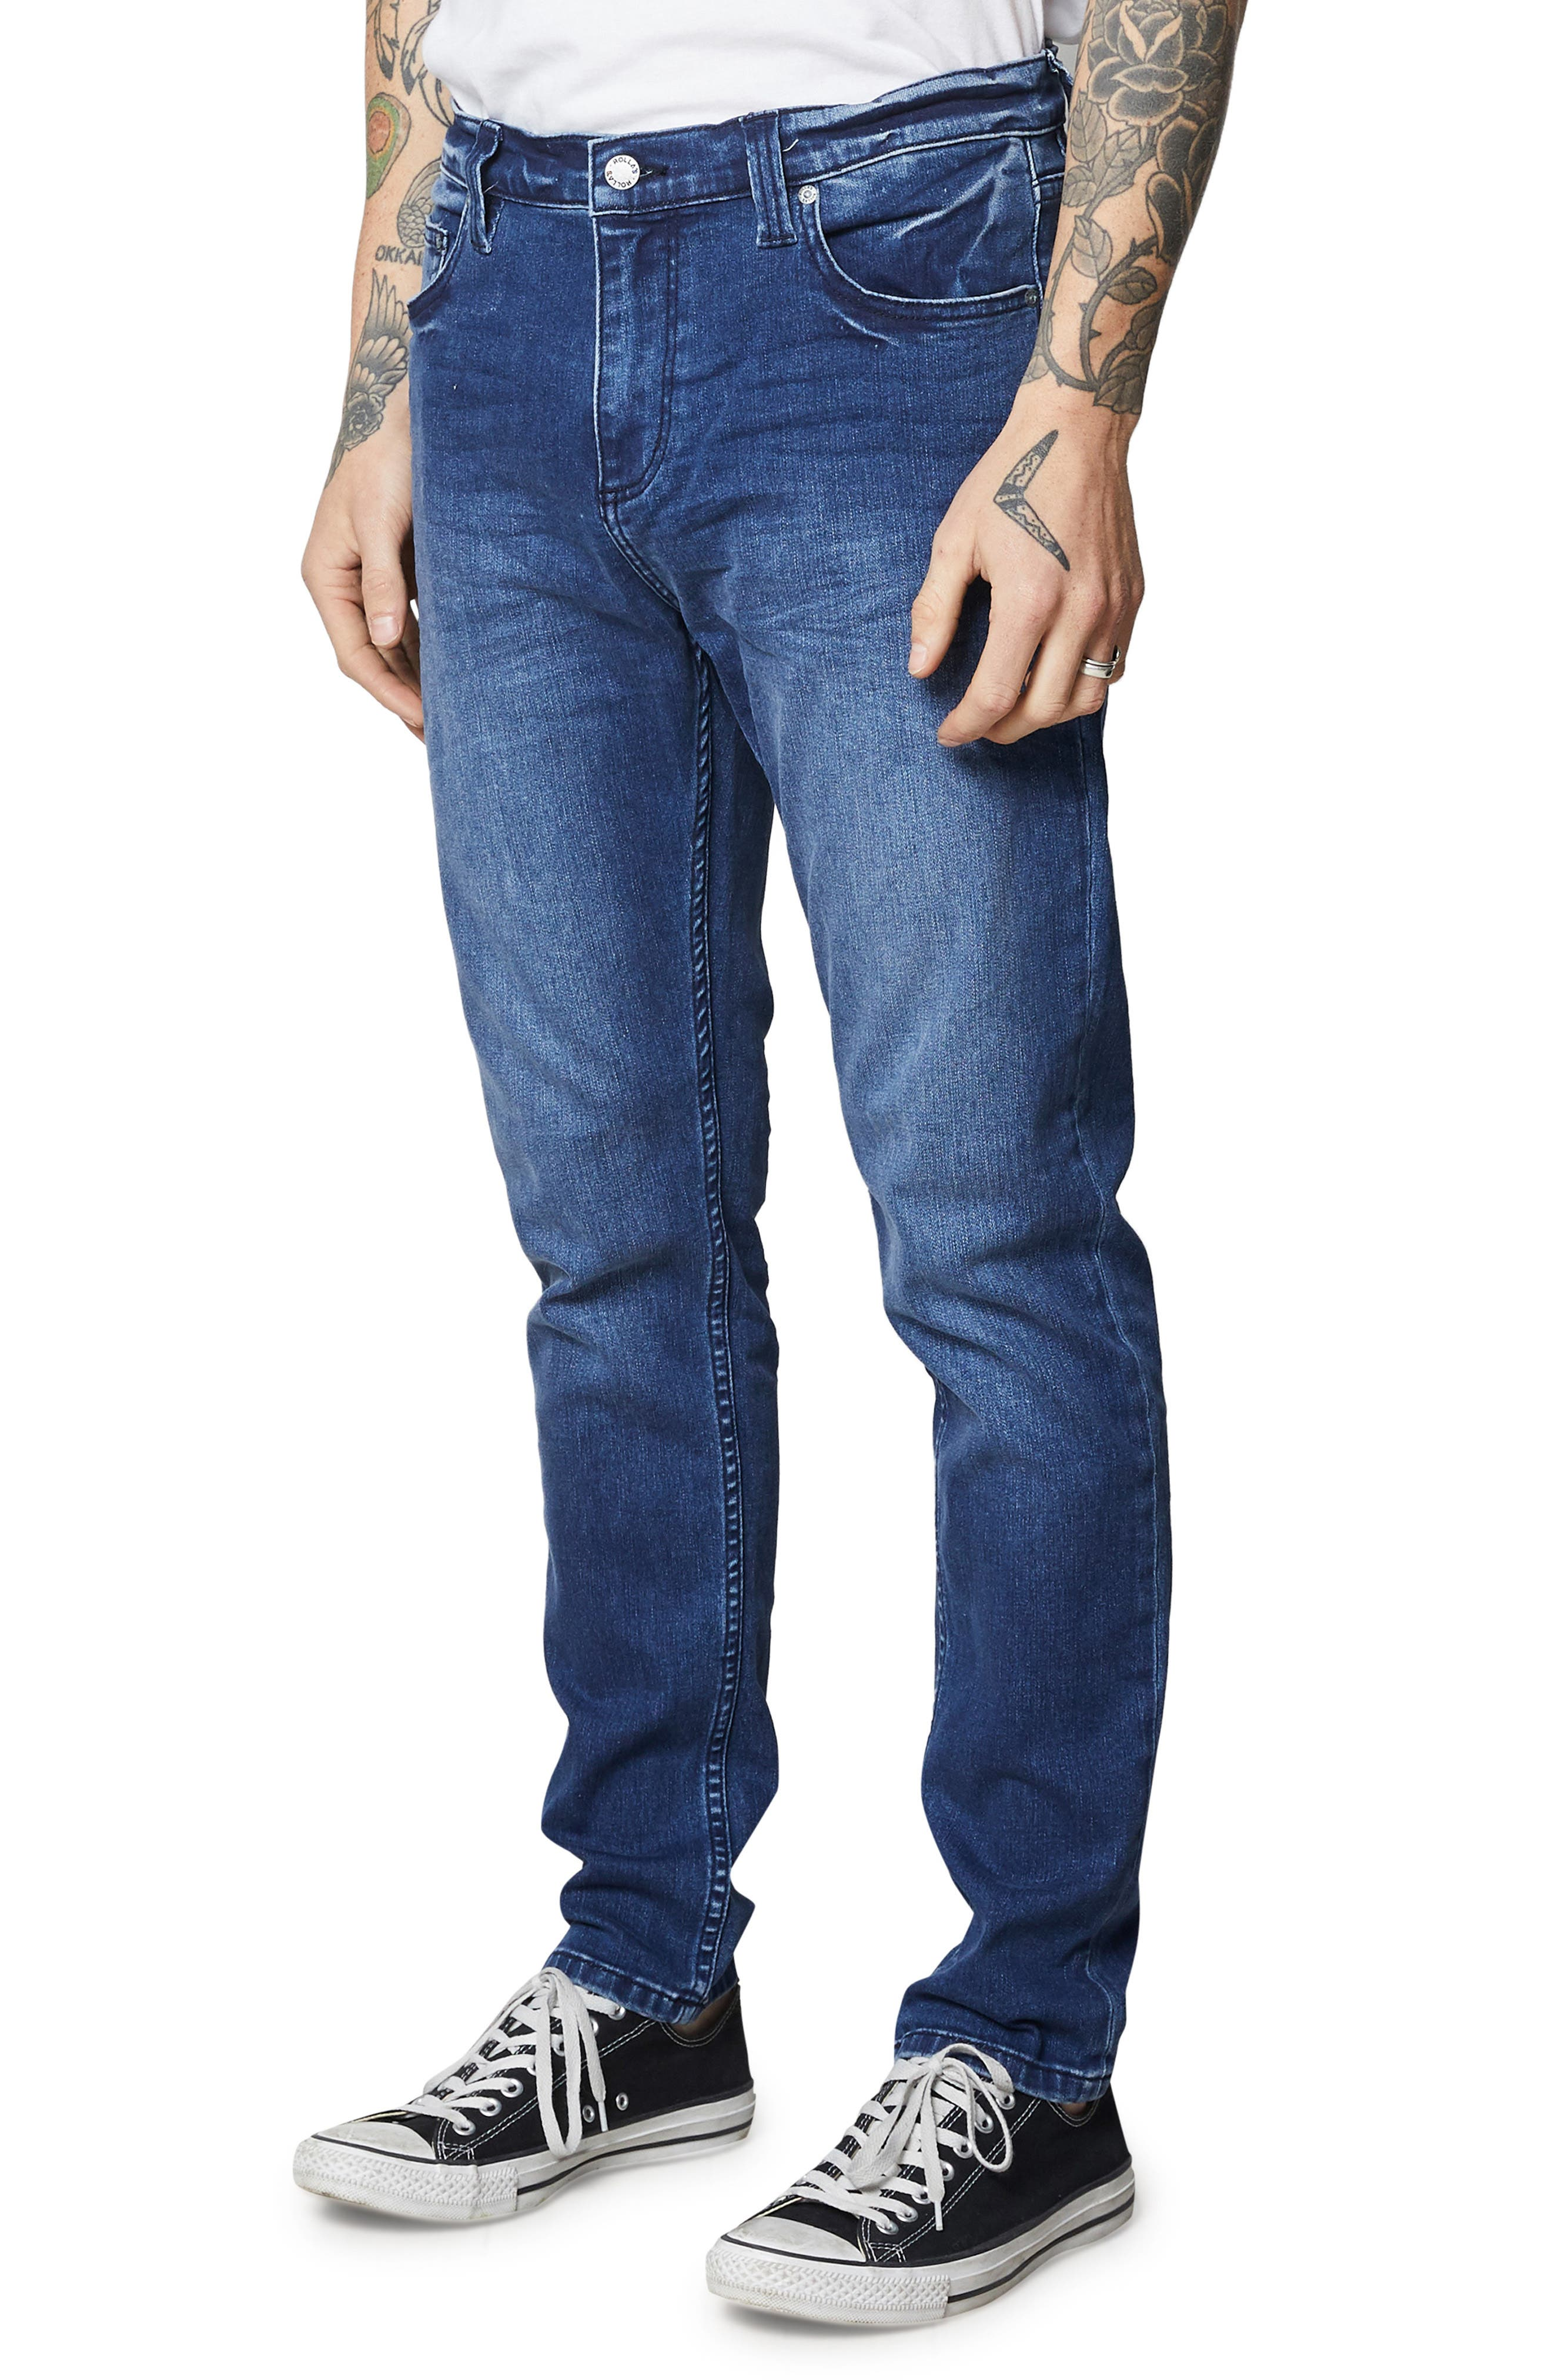 ROLLA'S,                             Tim Slims Slim Fit Jeans,                             Alternate thumbnail 3, color,                             FOSTERS BLUE